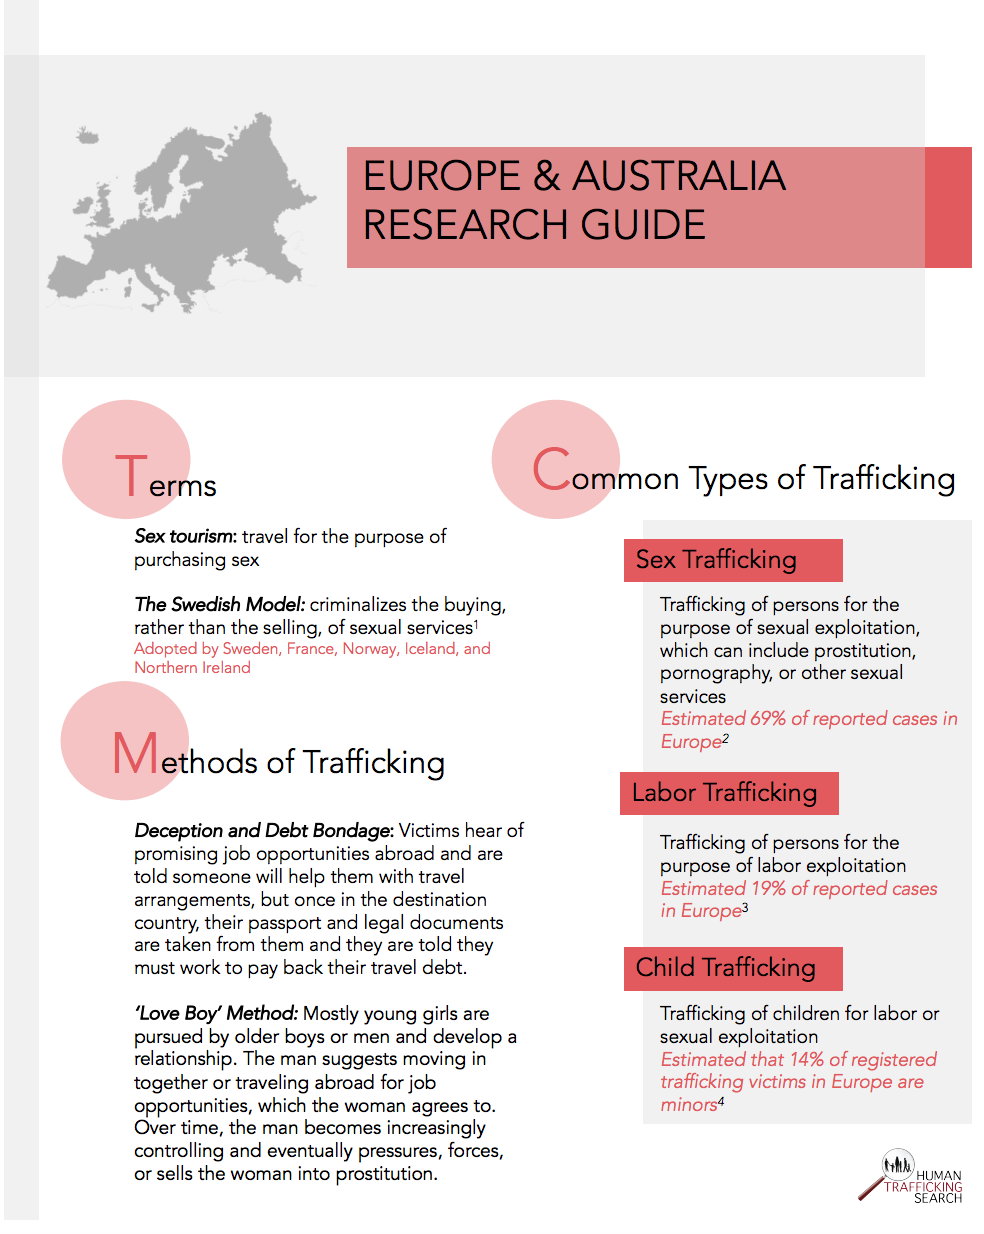 Europe and Australia Research Guide